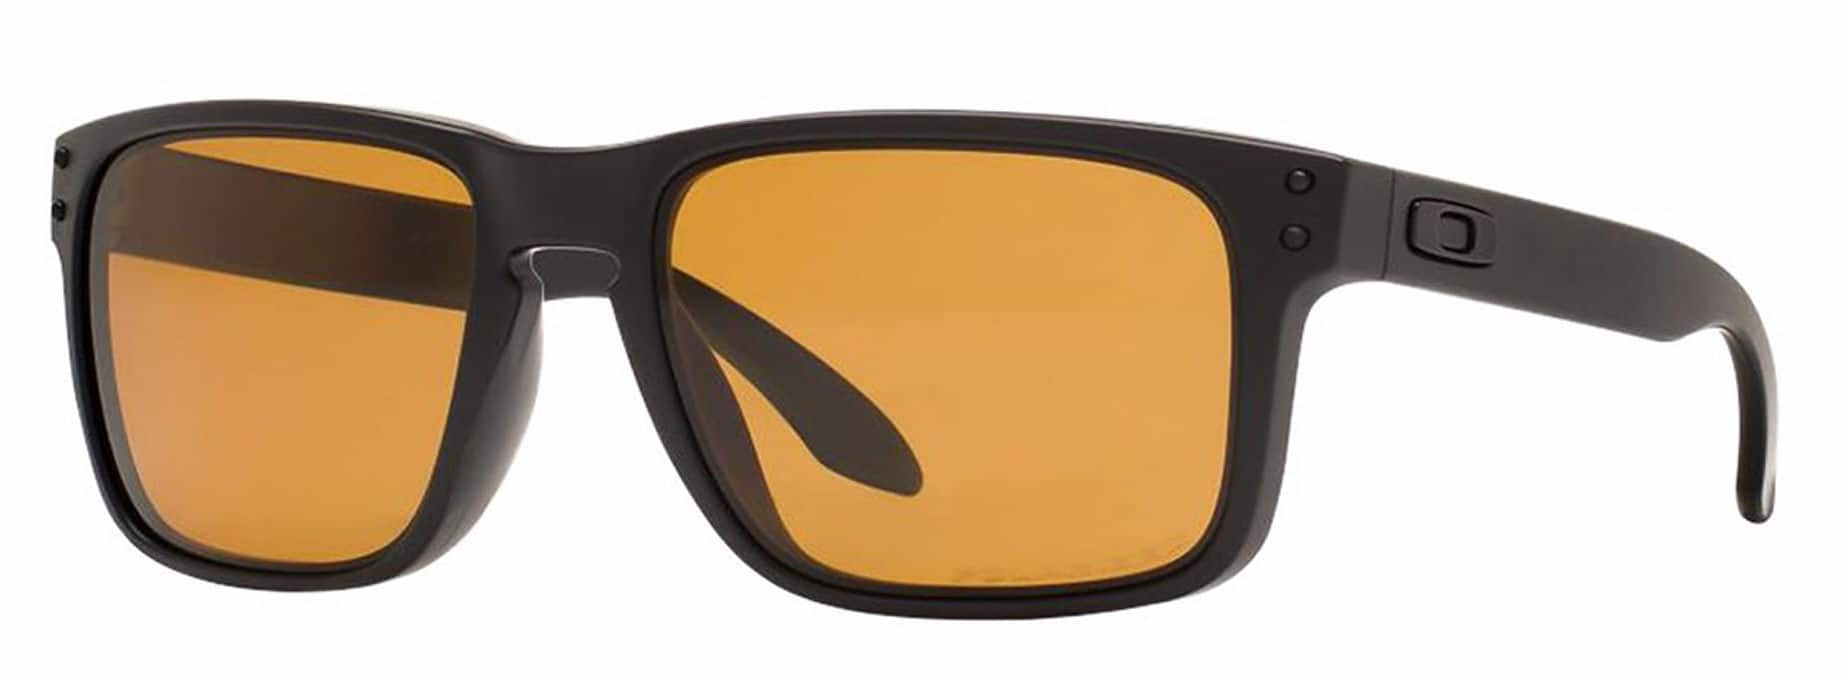 66e883a78d Oakley Holbrook Polarized Sunglasses in Matte Black Bronze  69 + free  shipping   BJs  69.99